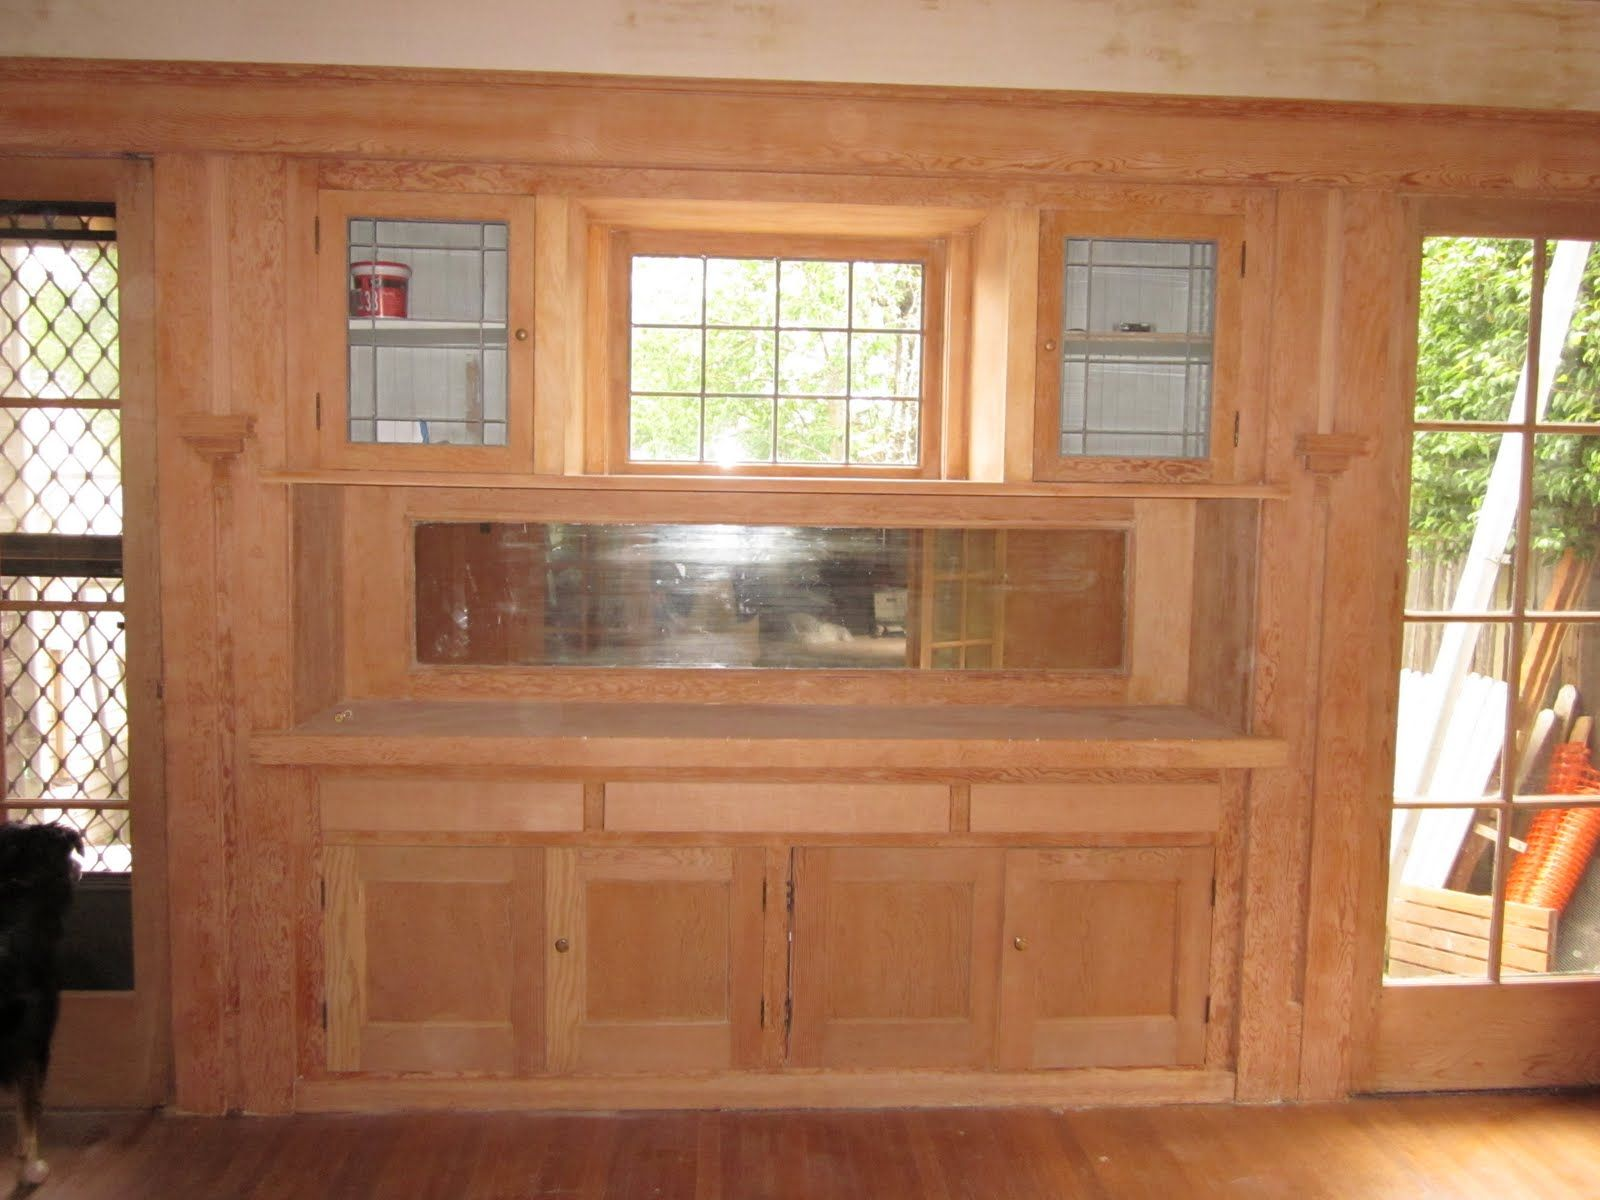 Show Me Your Dining Room Built Ins Built In Dining Room Cabinets